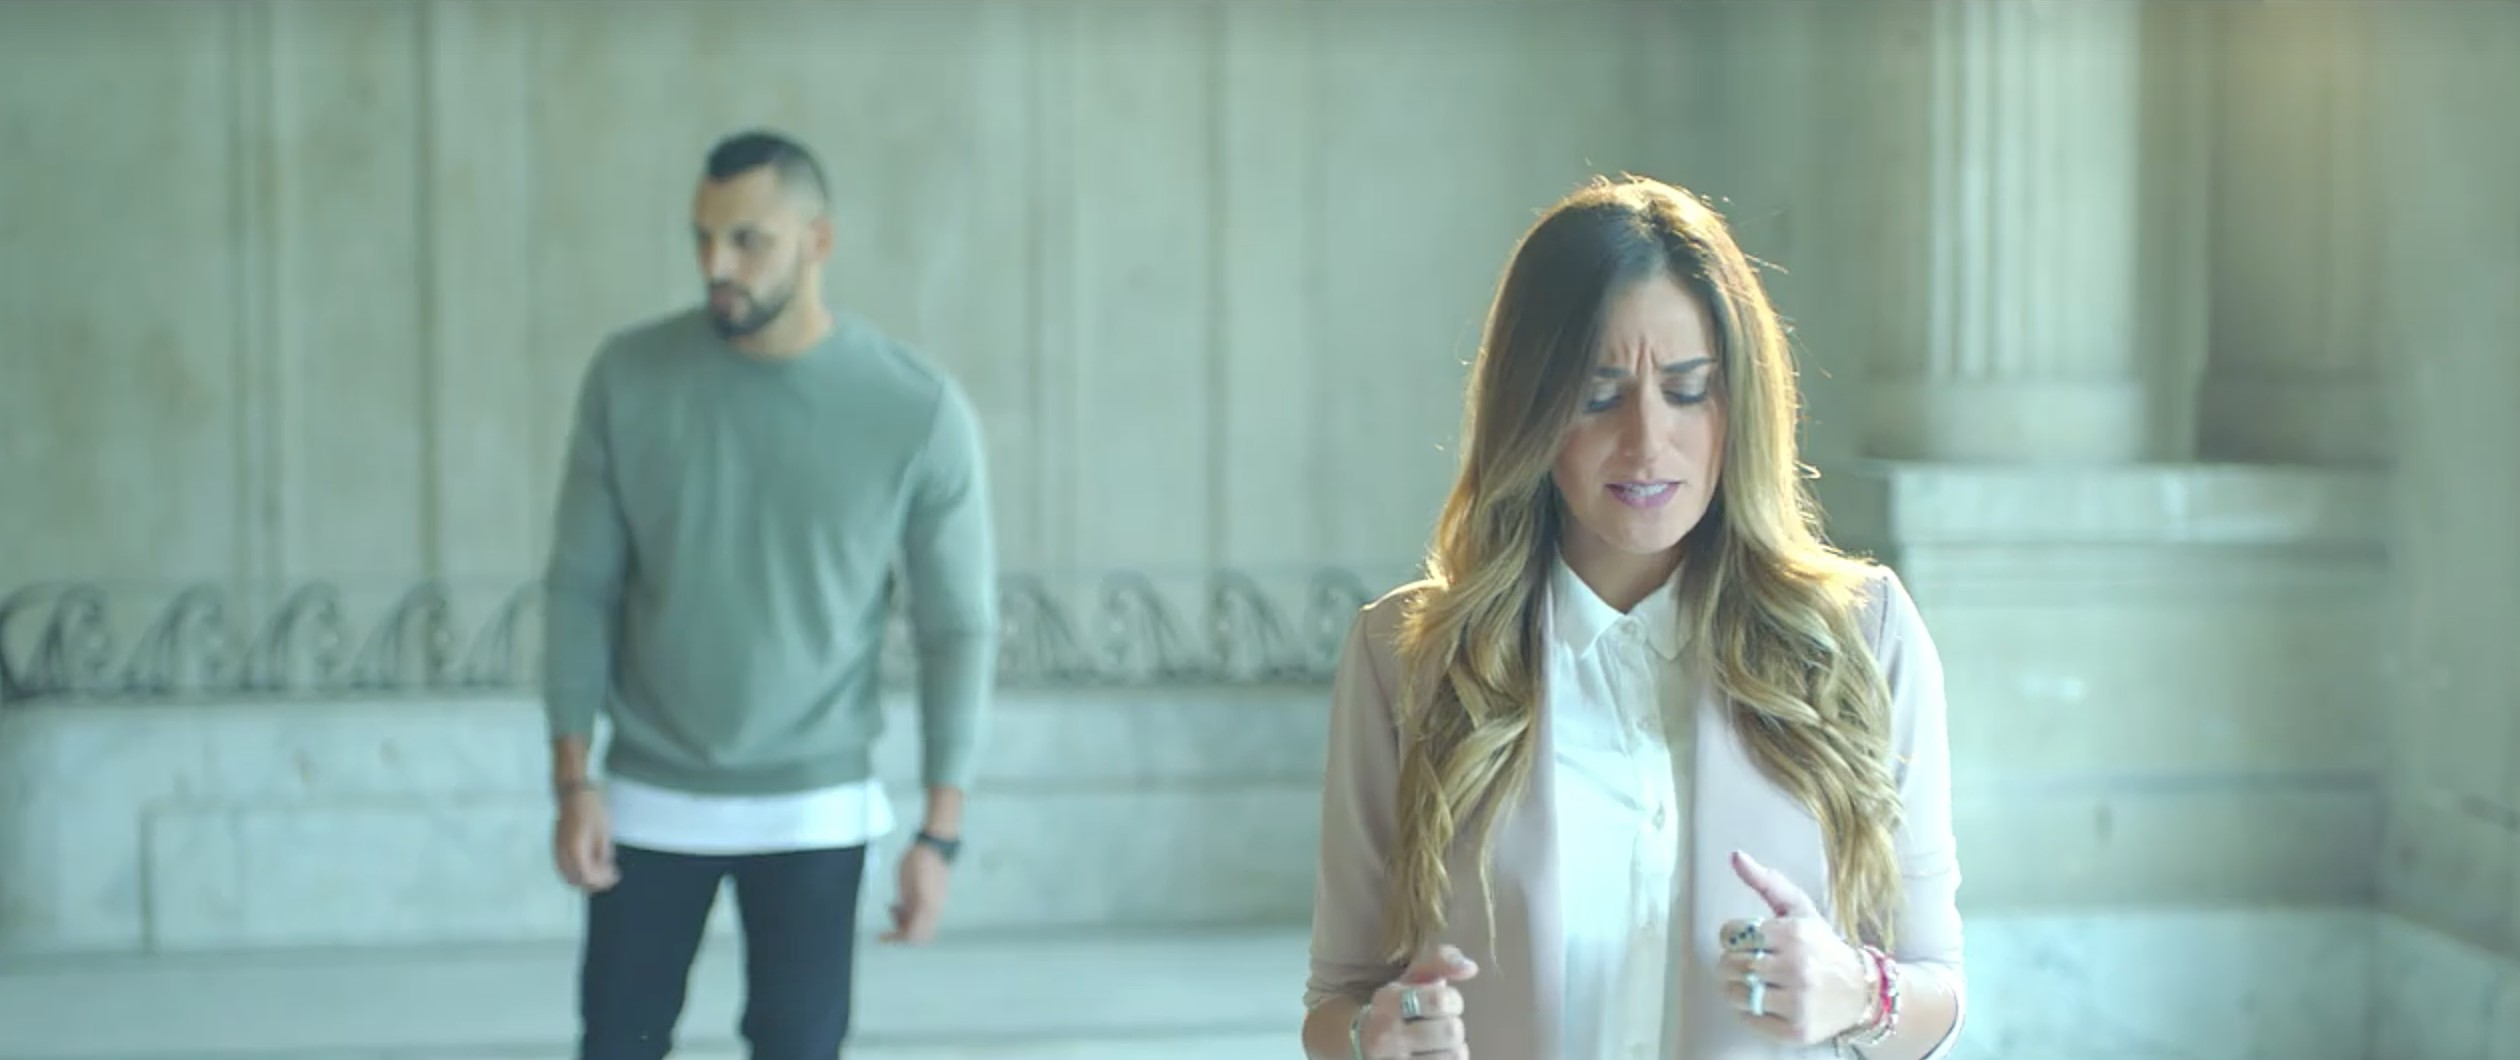 """How the Song """"Nour"""" Empowers an Entire Society: An Interview with Zap Tharwat and Amina Khalil"""